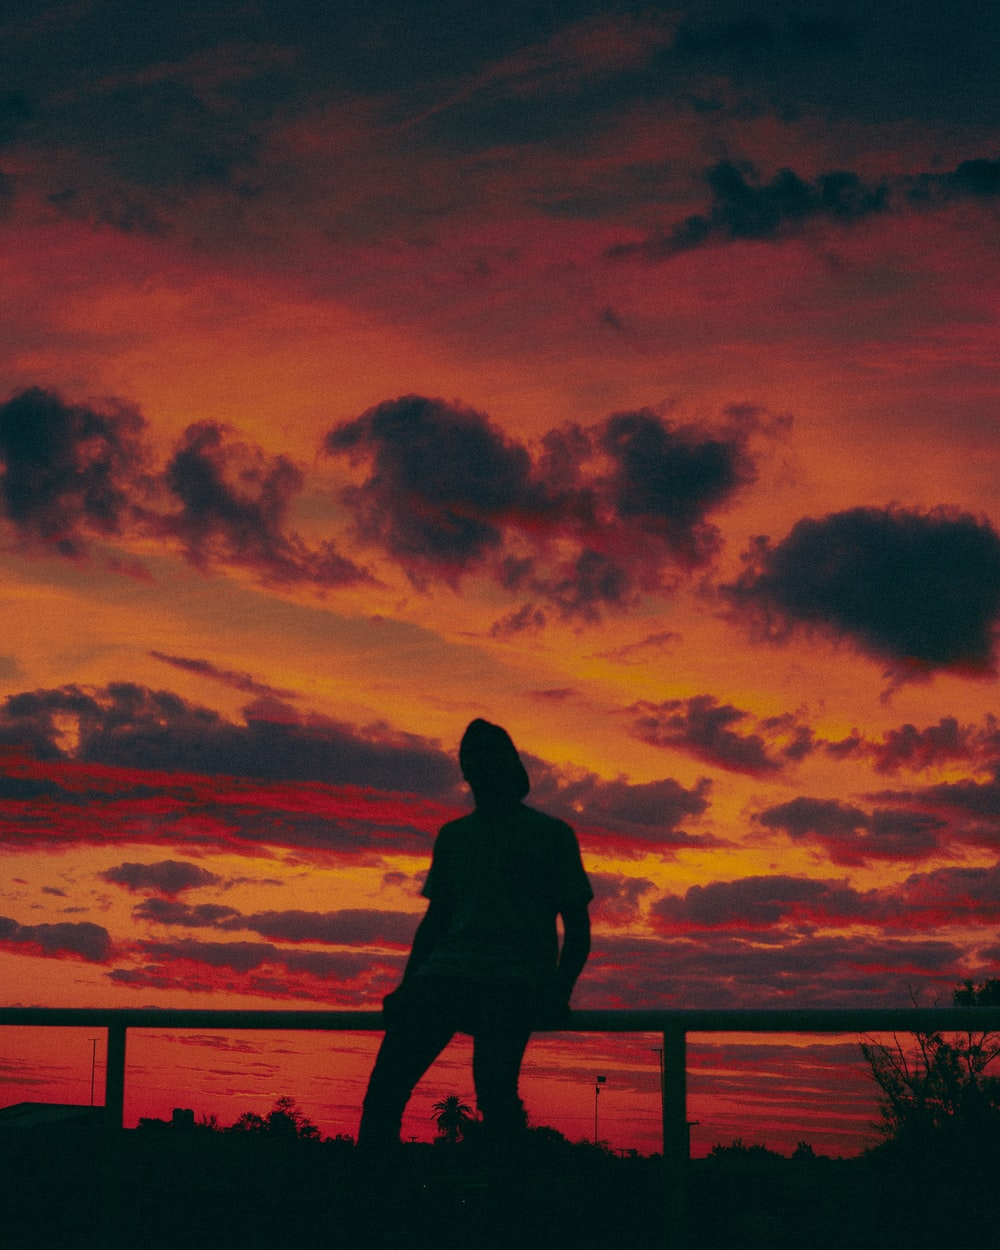 silhouette of man standing on wooden dock during sunset